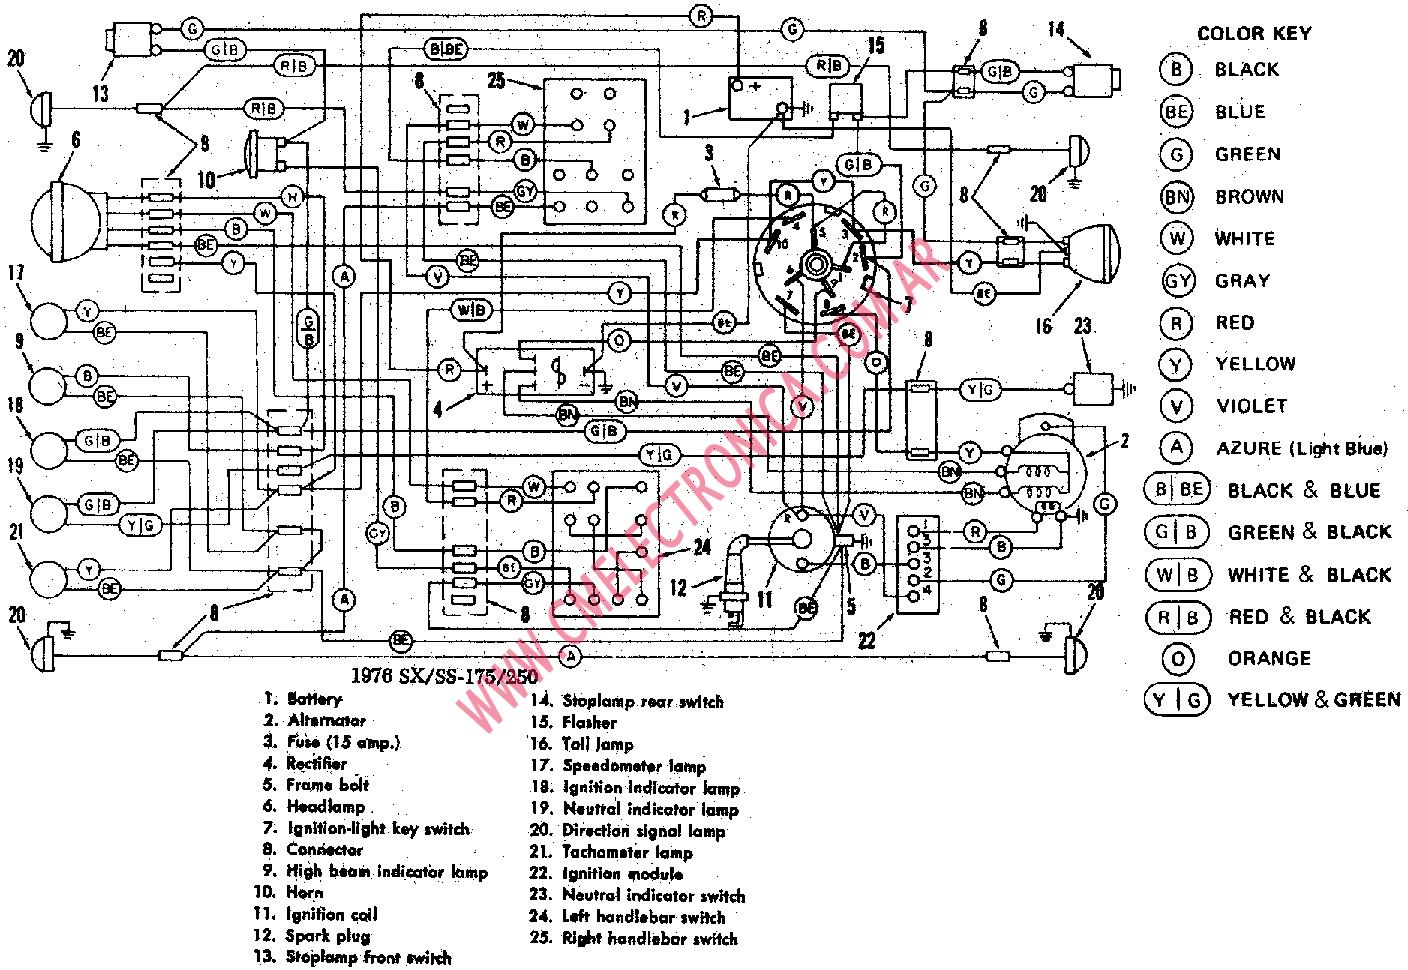 99 Yamaha Big Bear 350 Wiring Diagram moreover 3 together with Yamaha B Wiring Diagram also 2011 05 01 archive furthermore Universal Wiring Harness Road Light P 240. on yamaha rhino wiring harness diagram